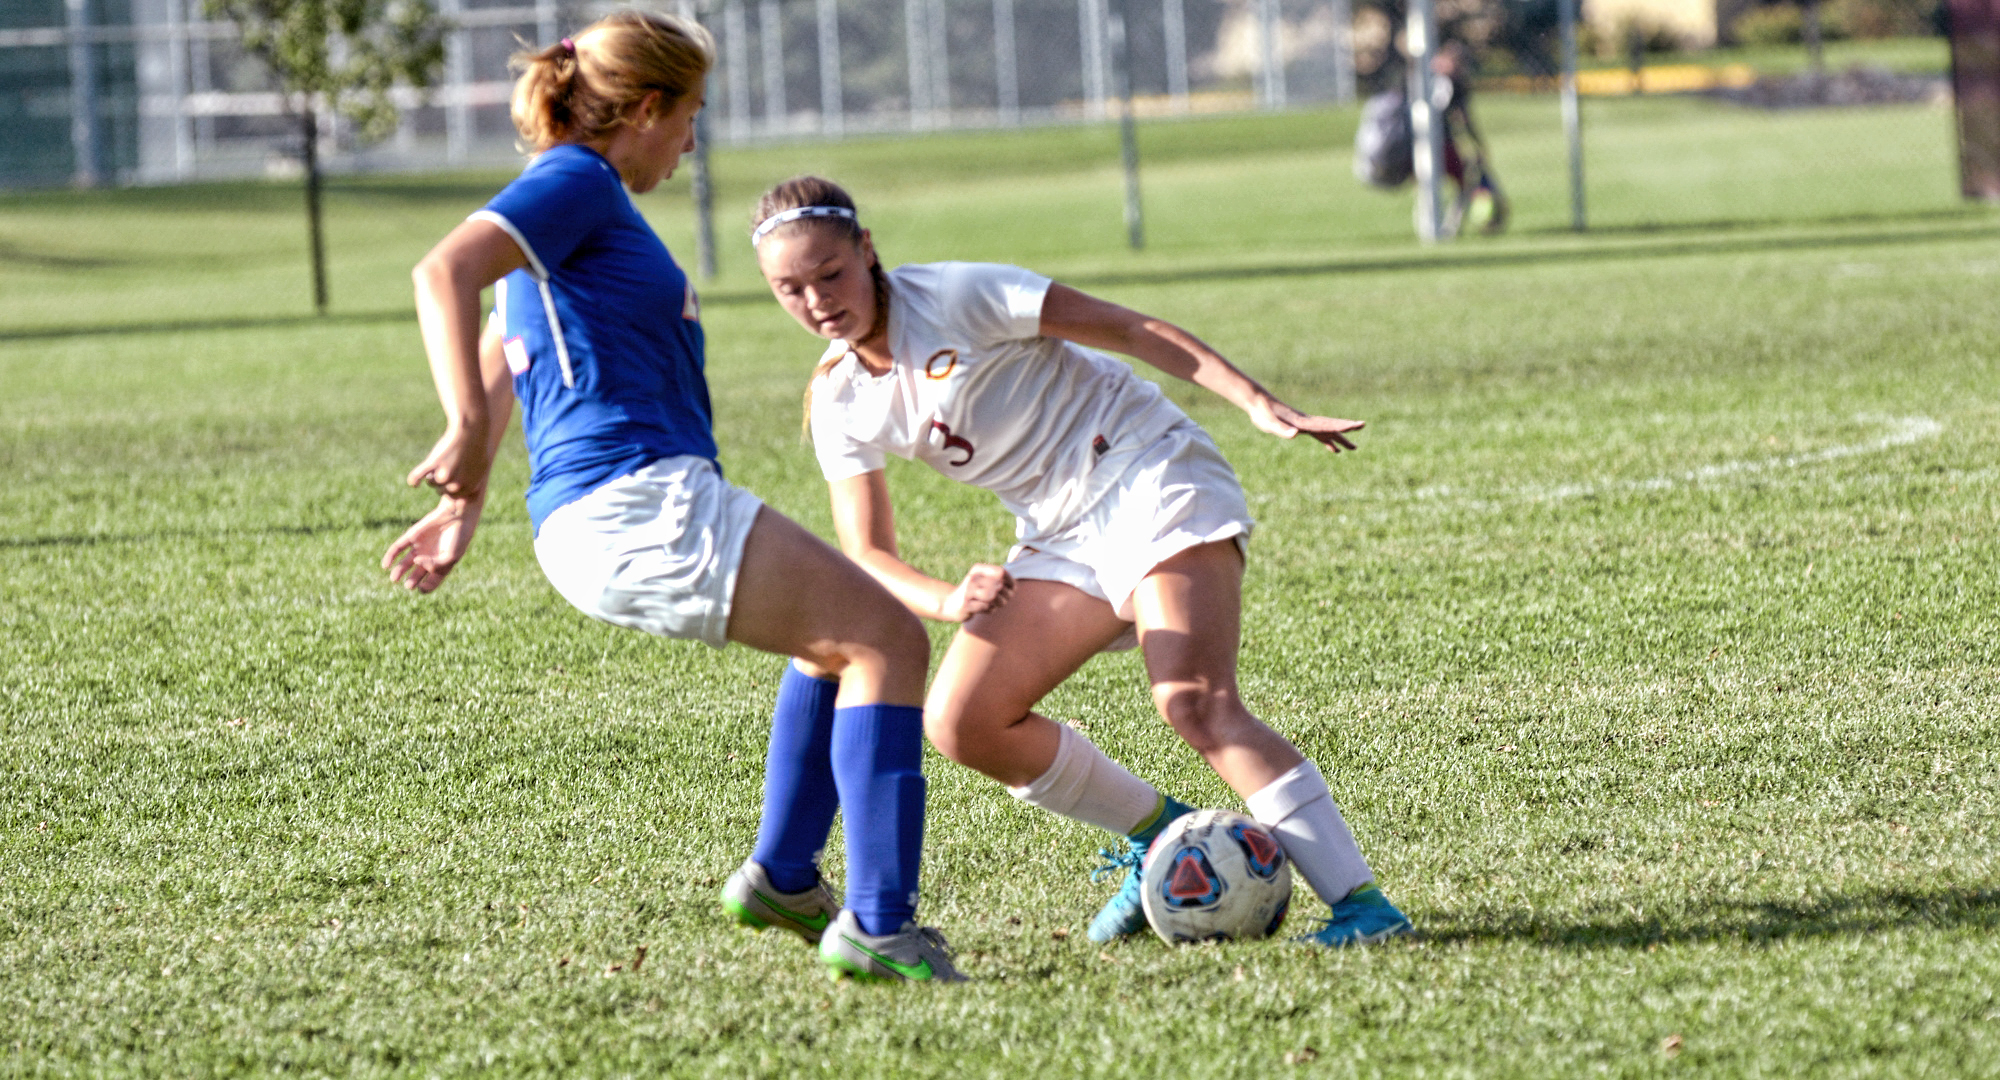 Cobber sophomore Halle Jordan scored her second game-winning goal of the year to help Concordia beat UMAC-leading Northwestern 2-1 in double overtime.